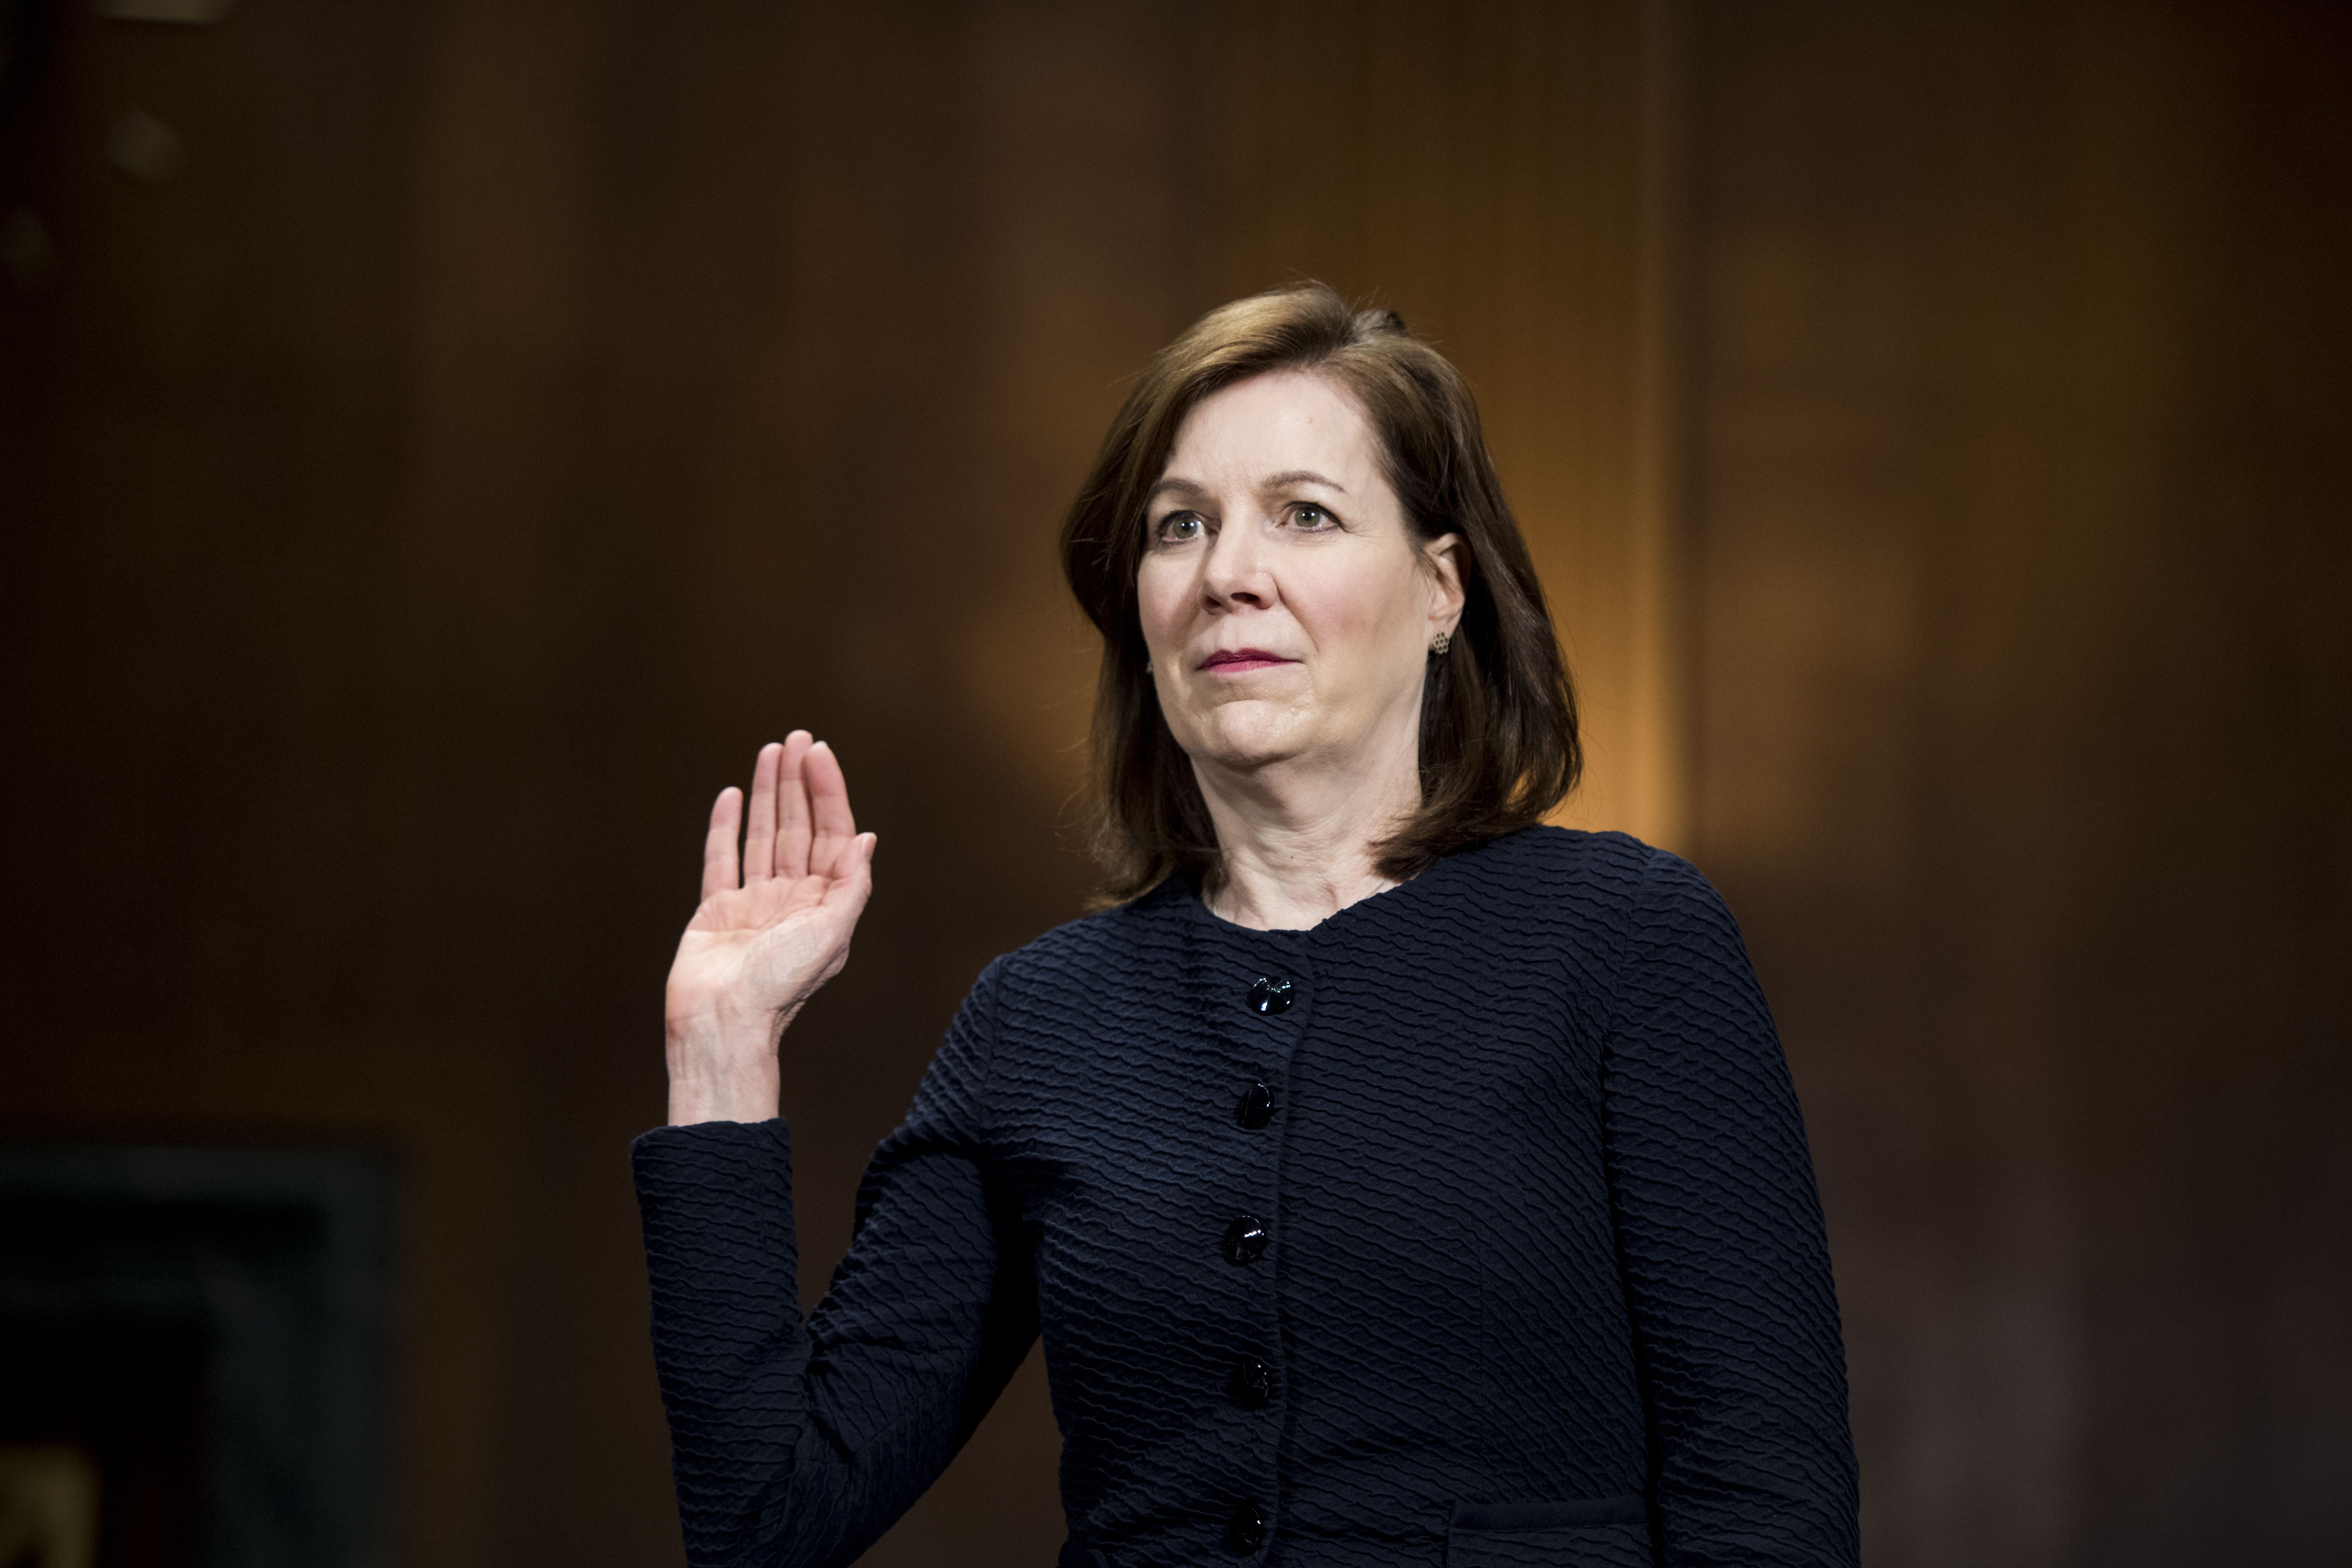 Dems react to the confirmation of Trump's judicial nominee Wendy Vitter - Axios